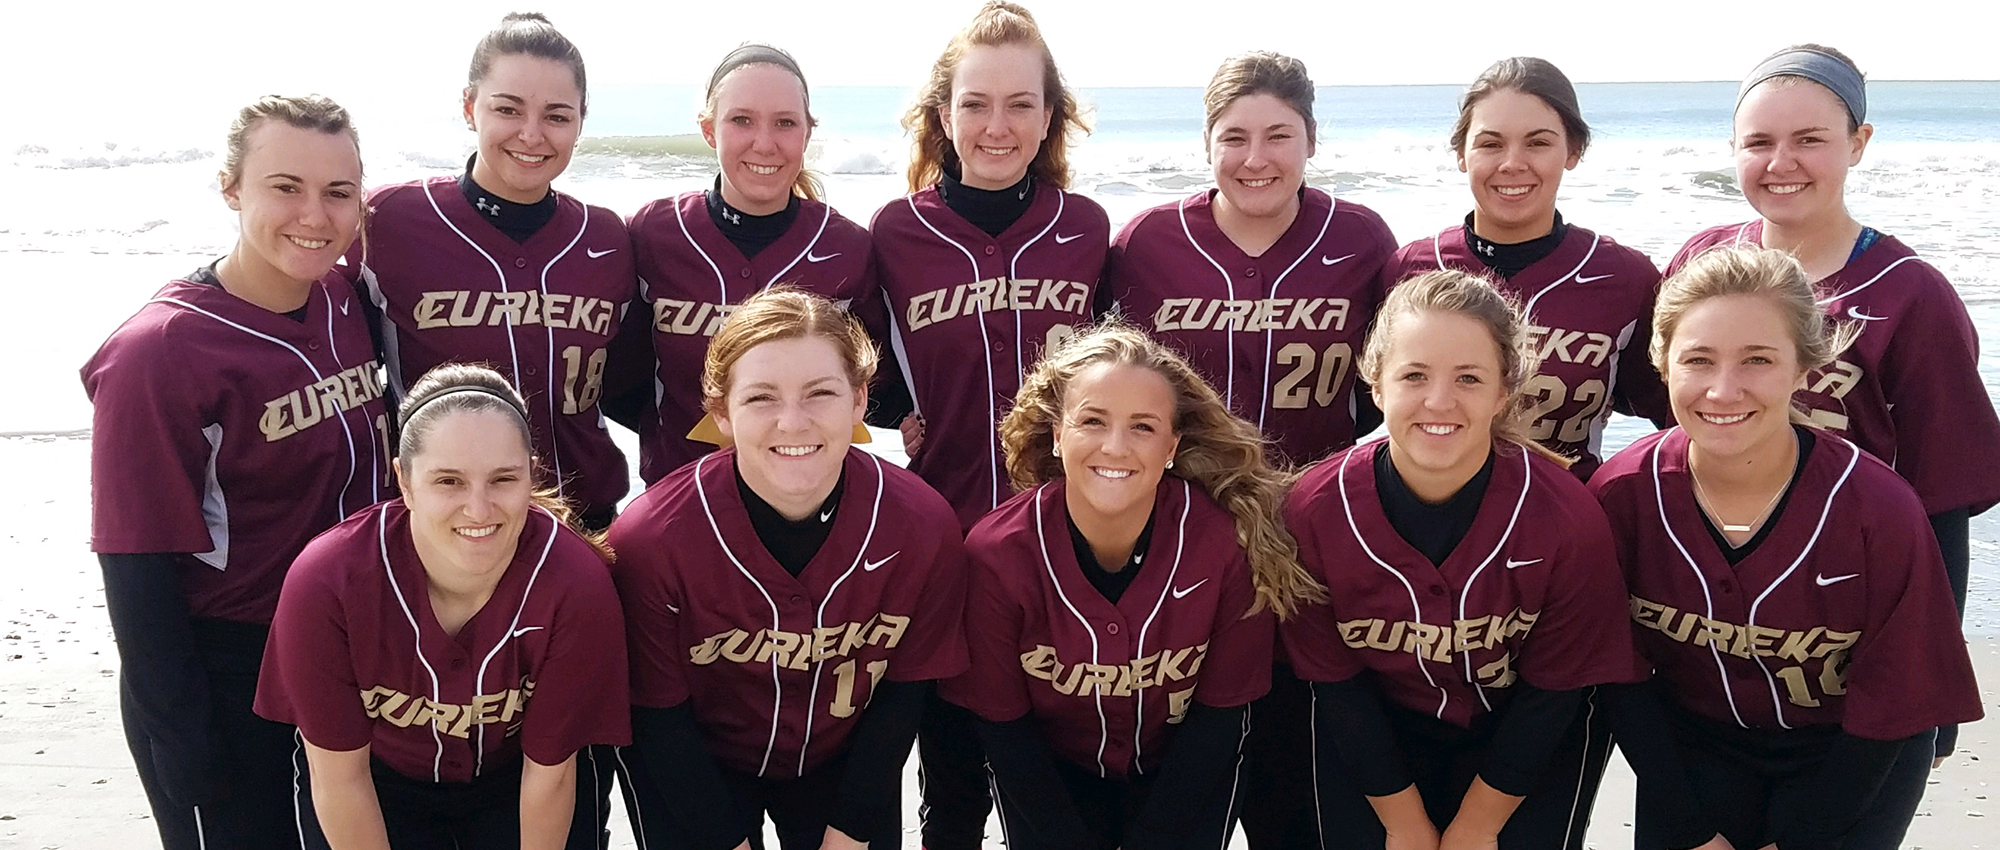 Eureka Sweeps Thursday, Finishes Spring Trip 7-1